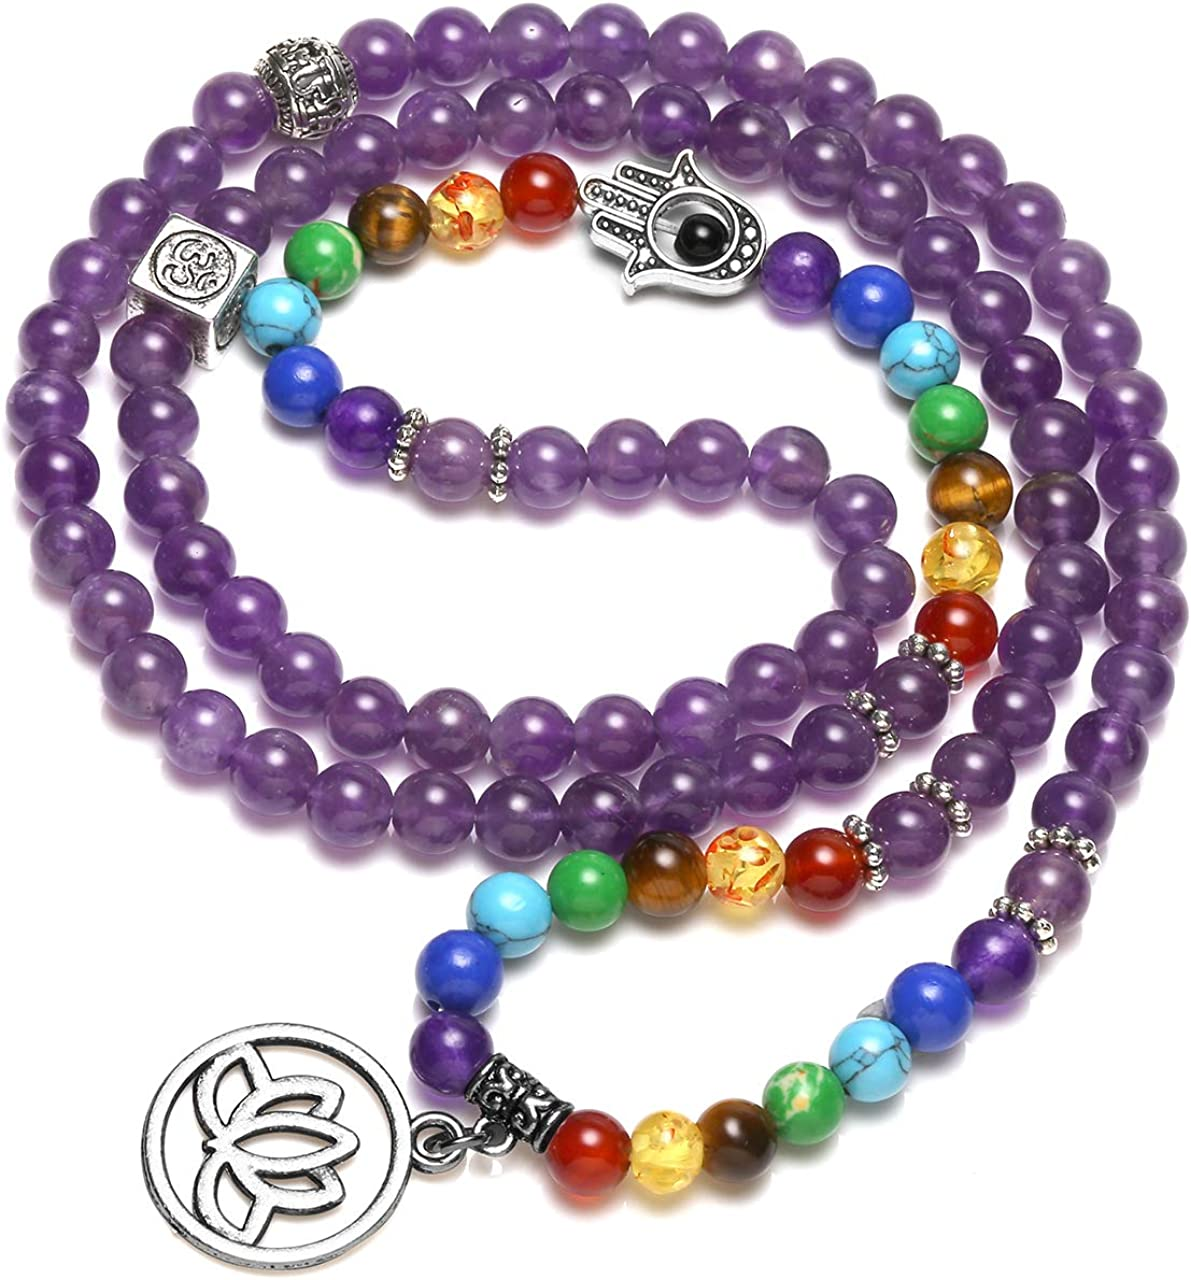 Jovivi 108 Mala Beads Chakra Bracelets Healing Crystal Necklace 6mm Lava Rock Stone Essential Oils Diffuser Bracelet 7 Chakras Bracelets Yoga Meditation for Stress Relief